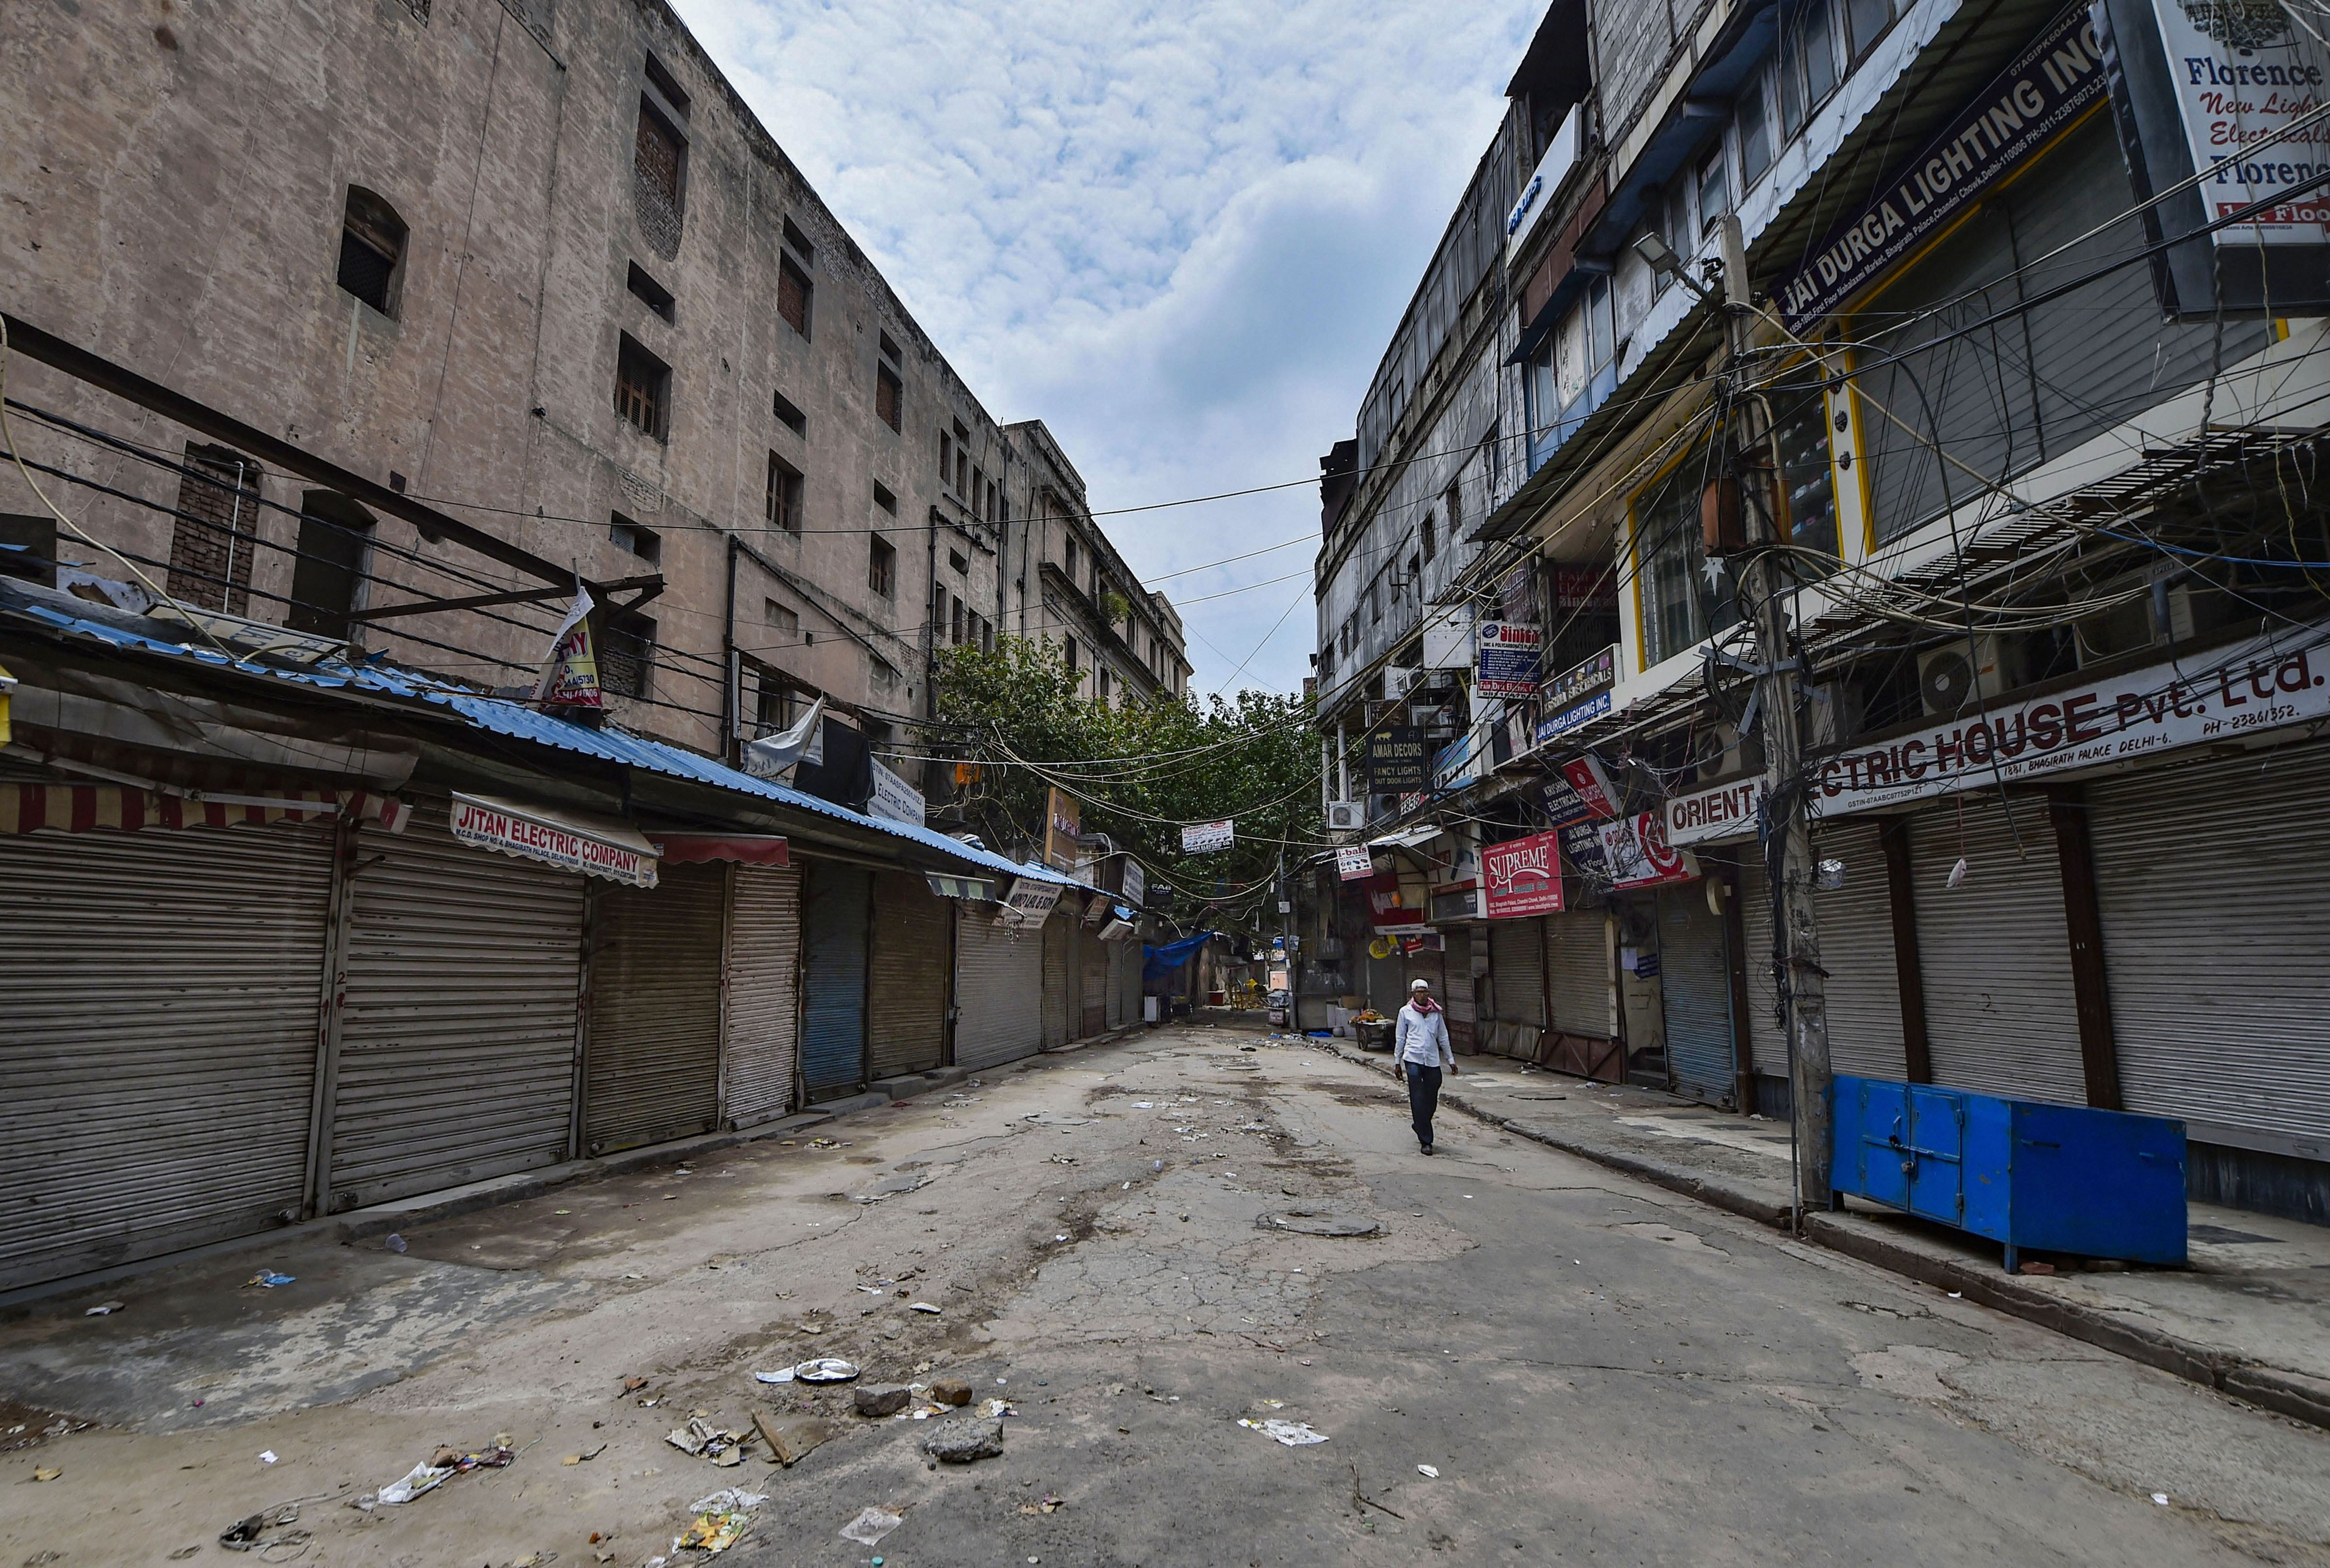 A view of deserted Bhagirath Palace market in Chandni Chowk, during ongoing Covid-19 lockdown in New Delhi, Sunday, May 31, 2020.